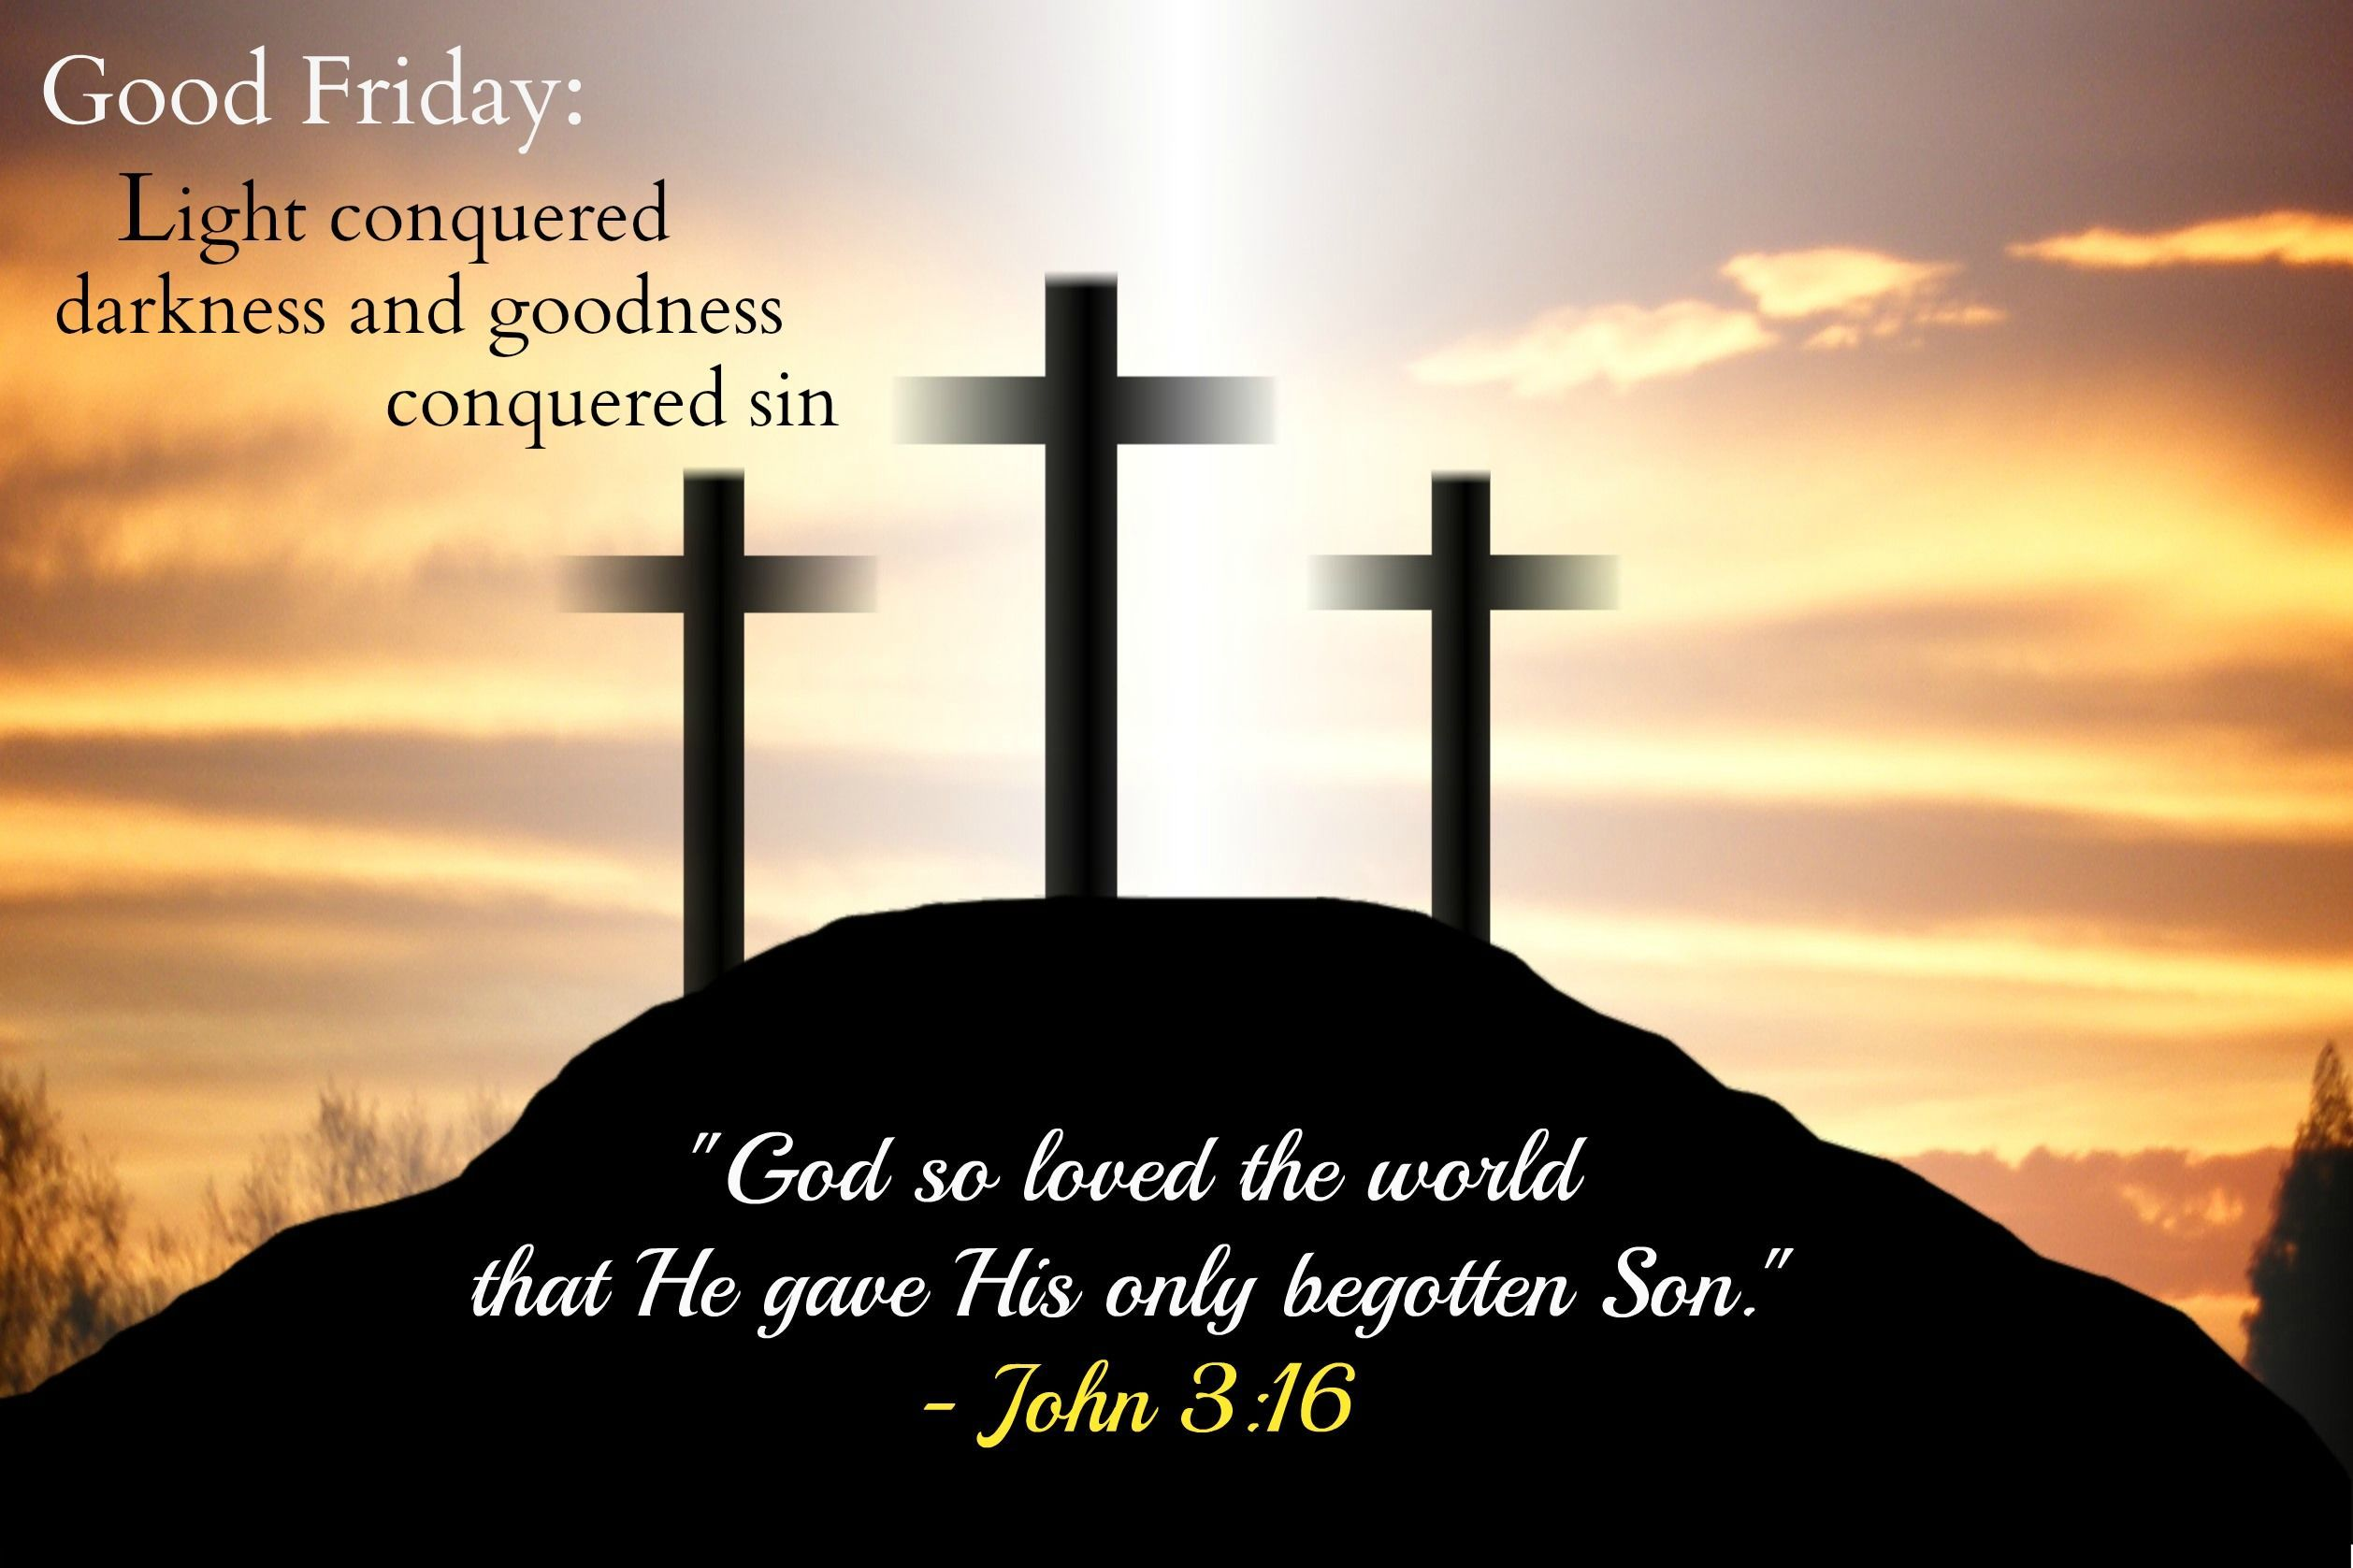 Religious Good Friday Quotes 2020